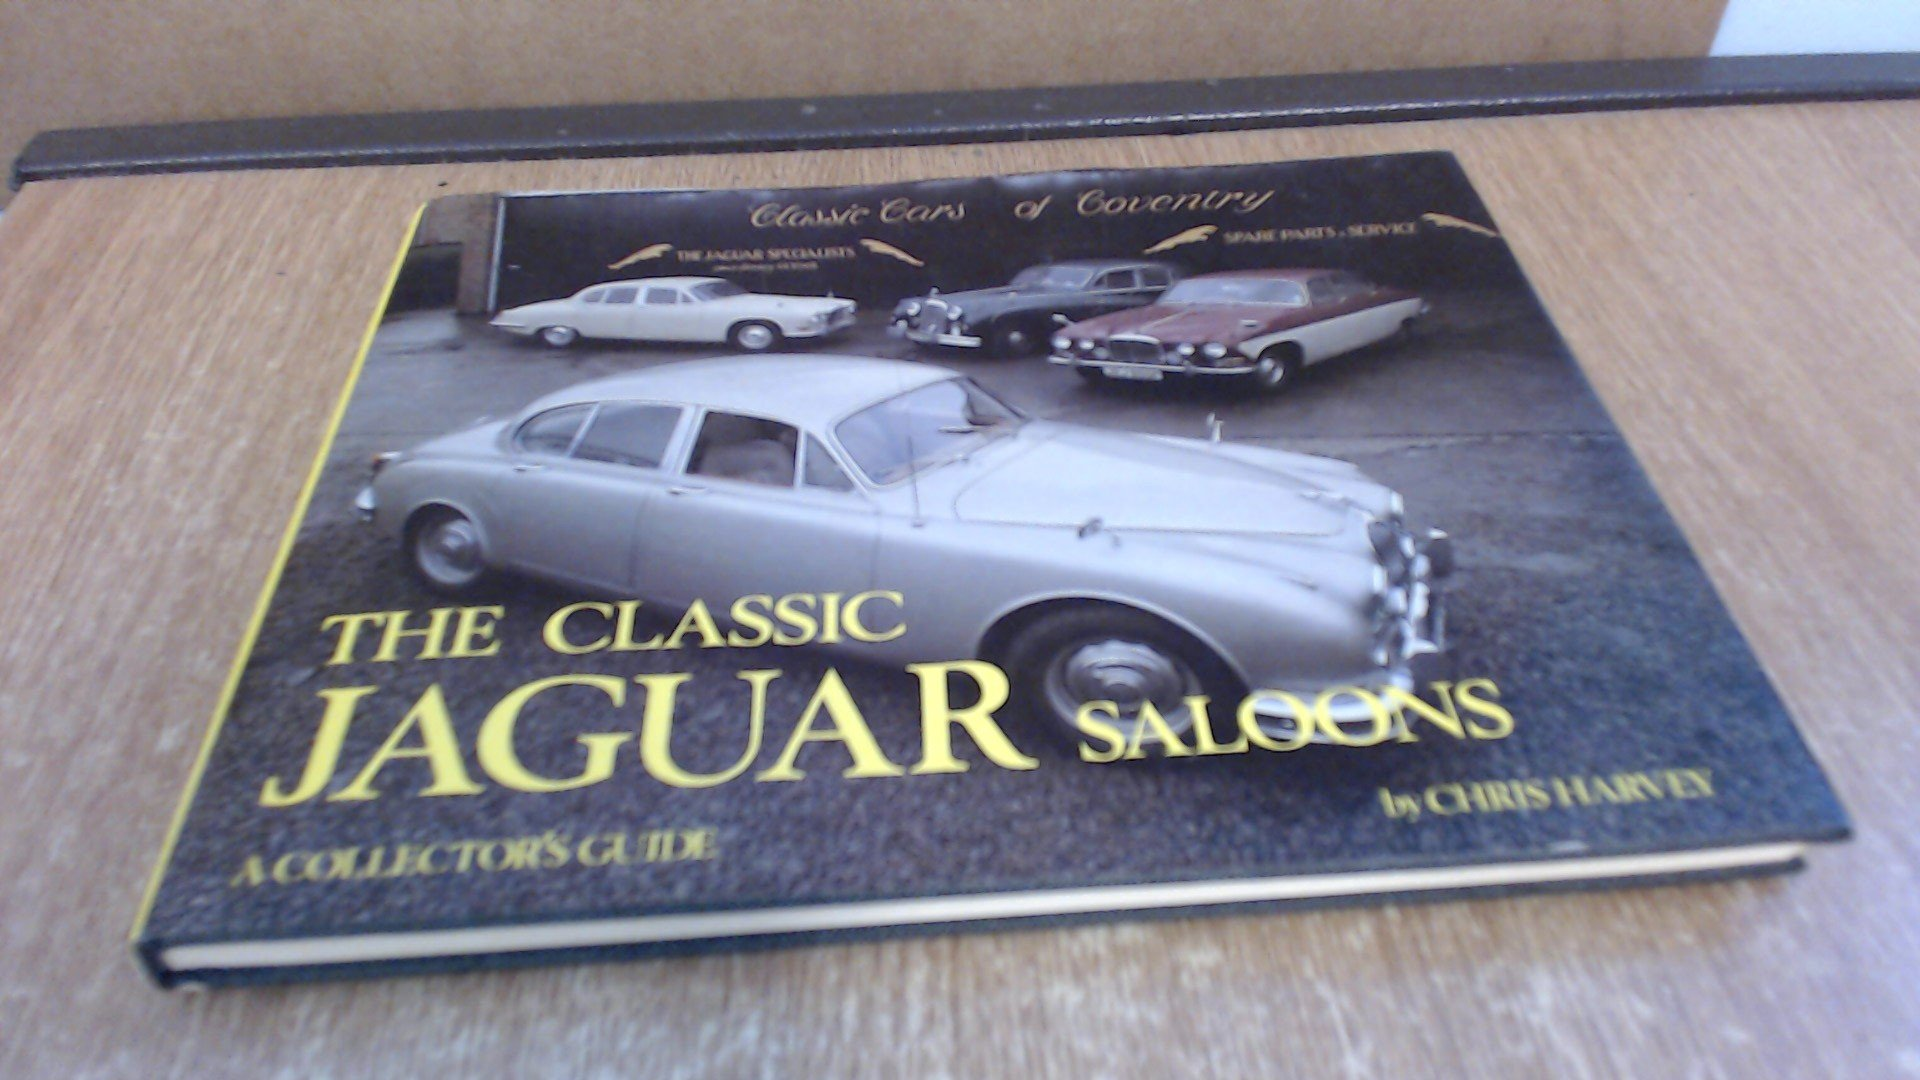 Classic Jaguar Saloons (Collector's Guides)